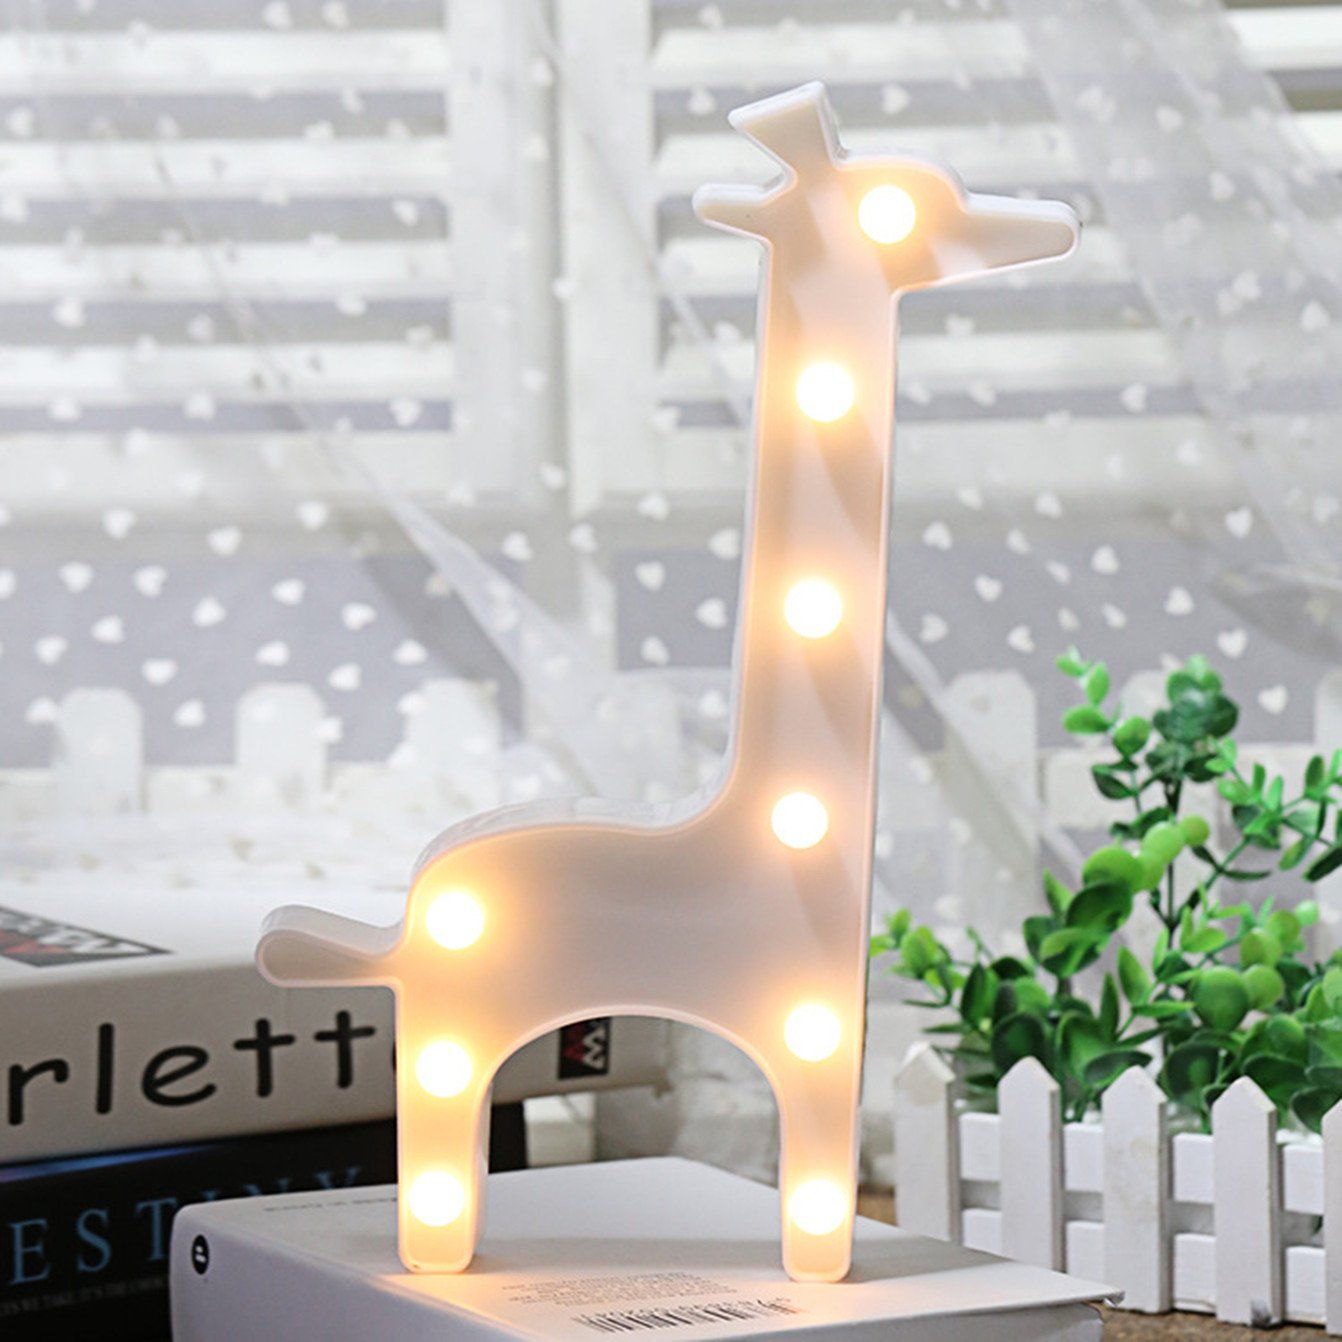 Ins/Chic Style Cute Animal Decor Sign Light,LED plastic Giraffe Shaped Sign-Lighted Marquee Giraffe Sign Wall Decor for Chistmas,Birthday party,Kids Room, Living Room, Wedding Party Decor(white )